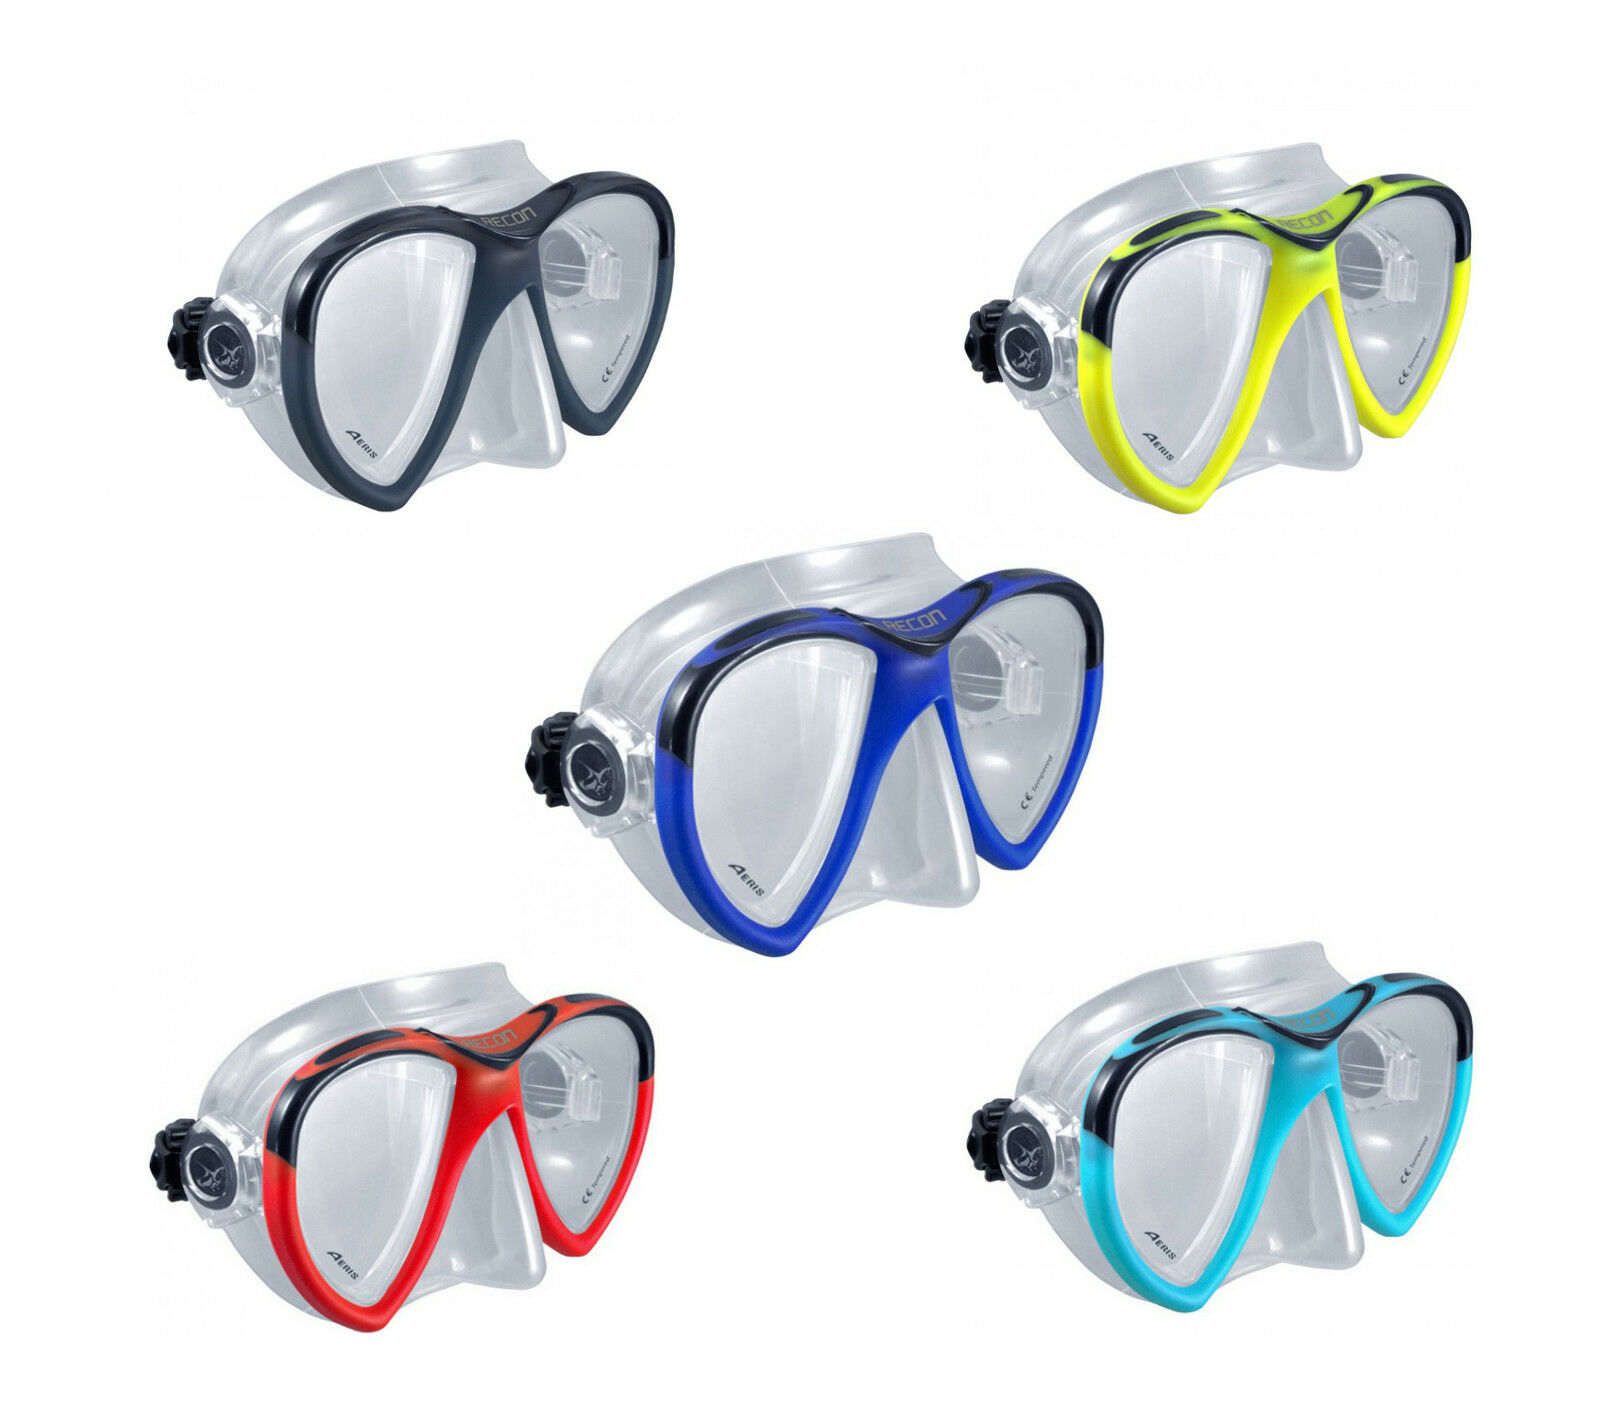 Oceanic - Aeris - Recon 2-glas-maske - with   Ultra Clear   Safety Glass